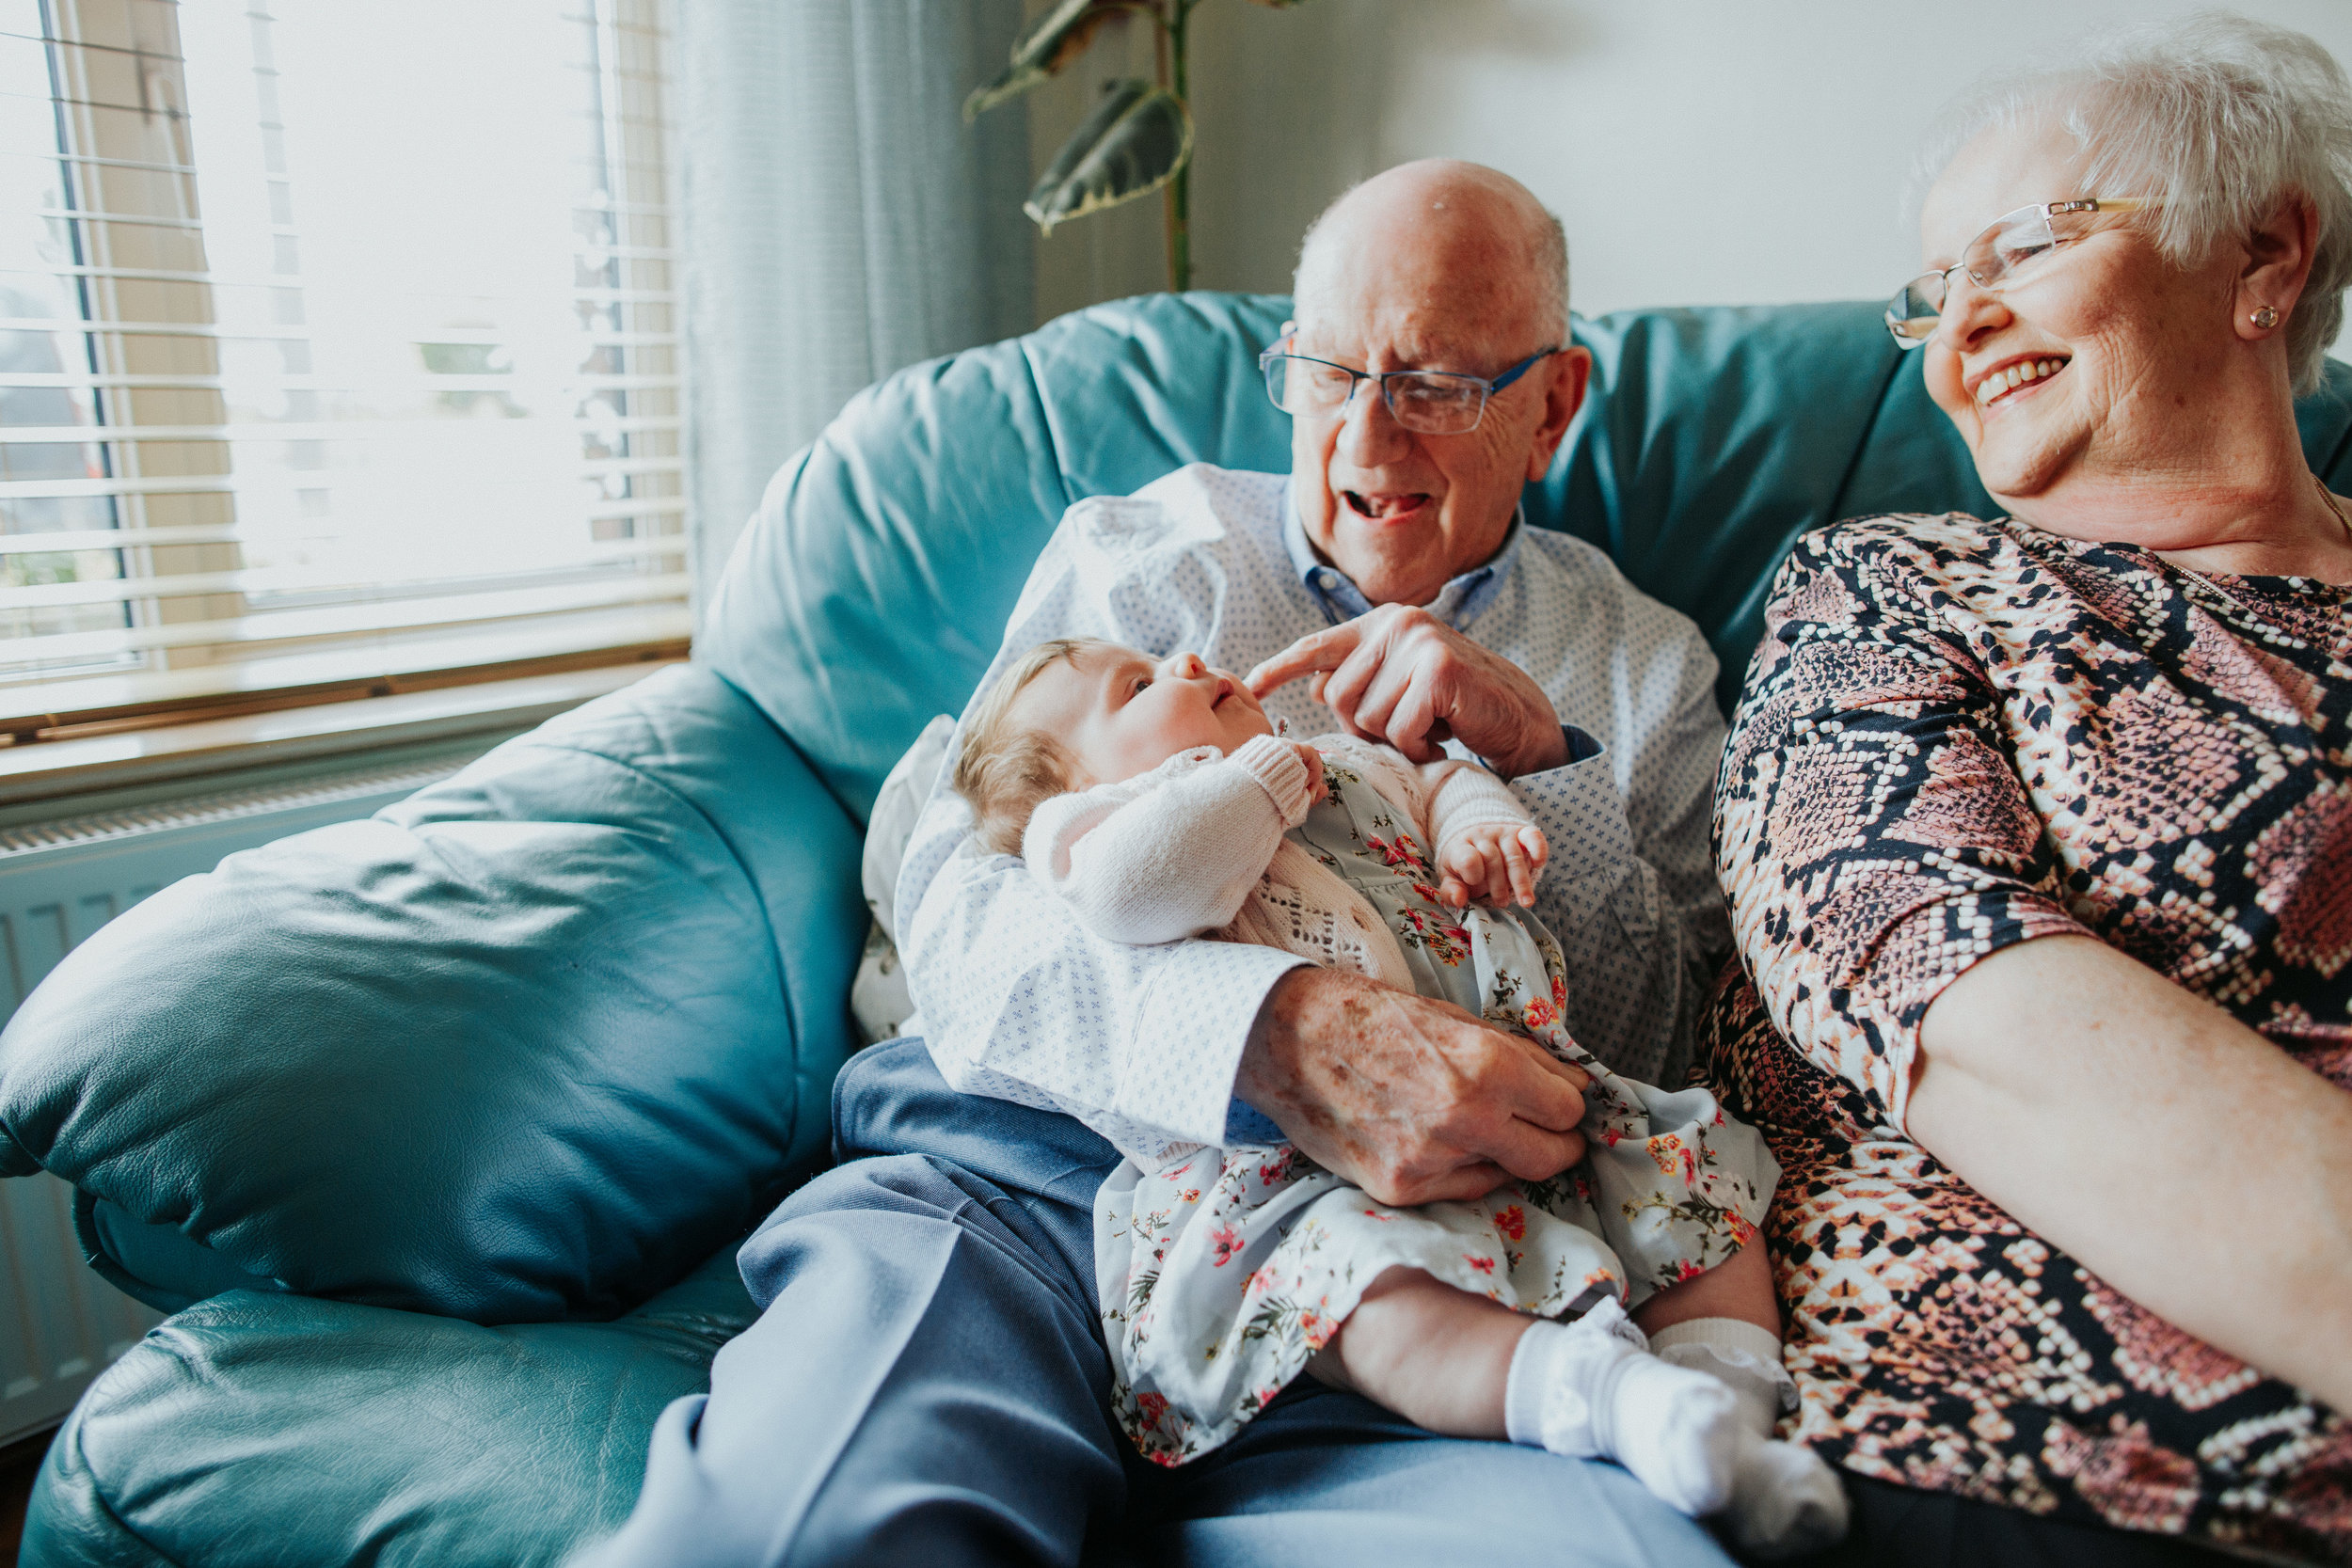 grandparents holding baby granddaughter